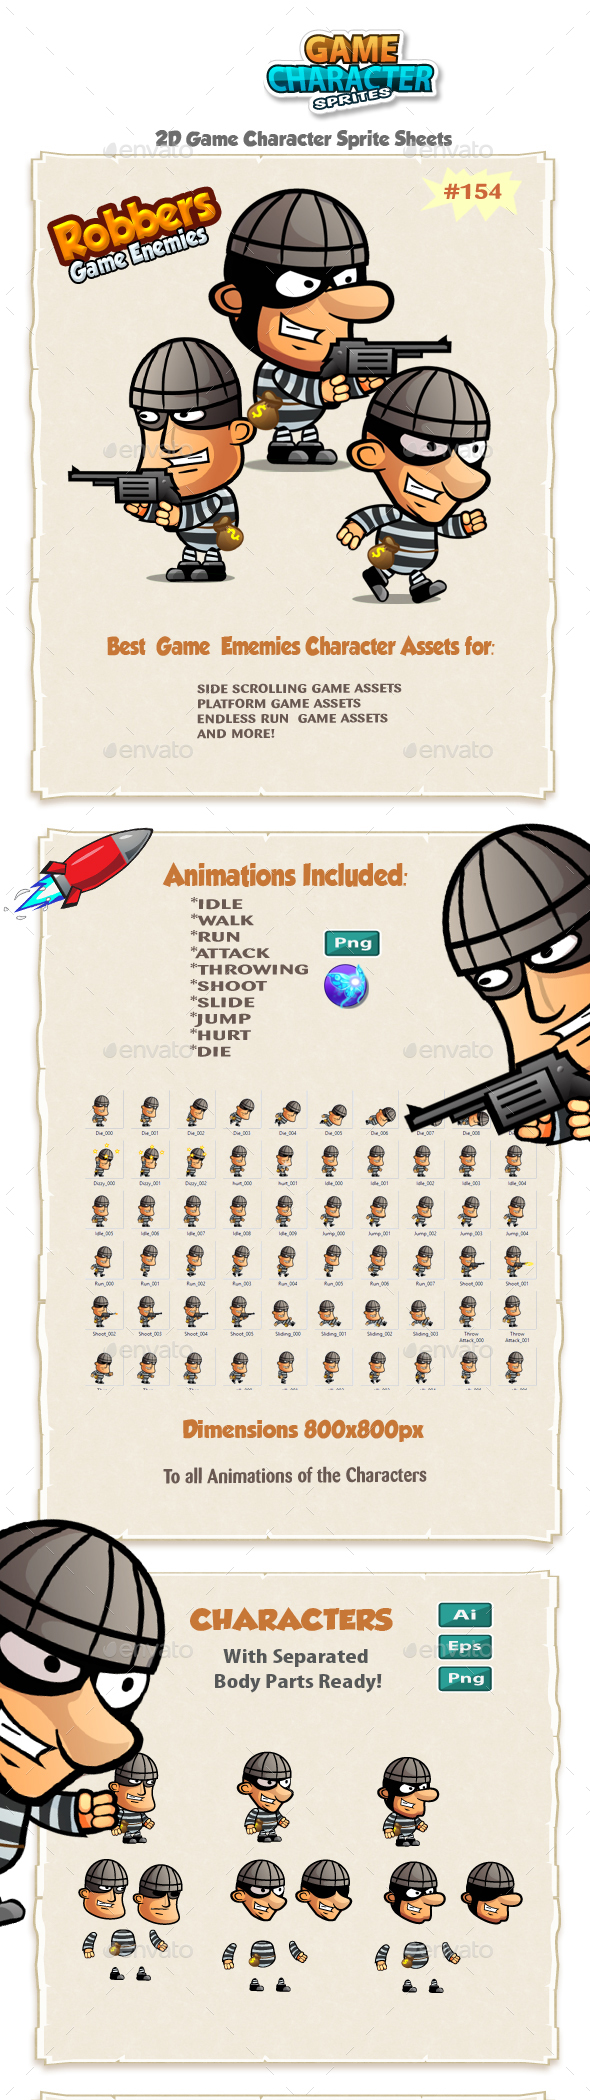 The Robbers 2D Game Characters sprites 154 - Sprites Game Assets